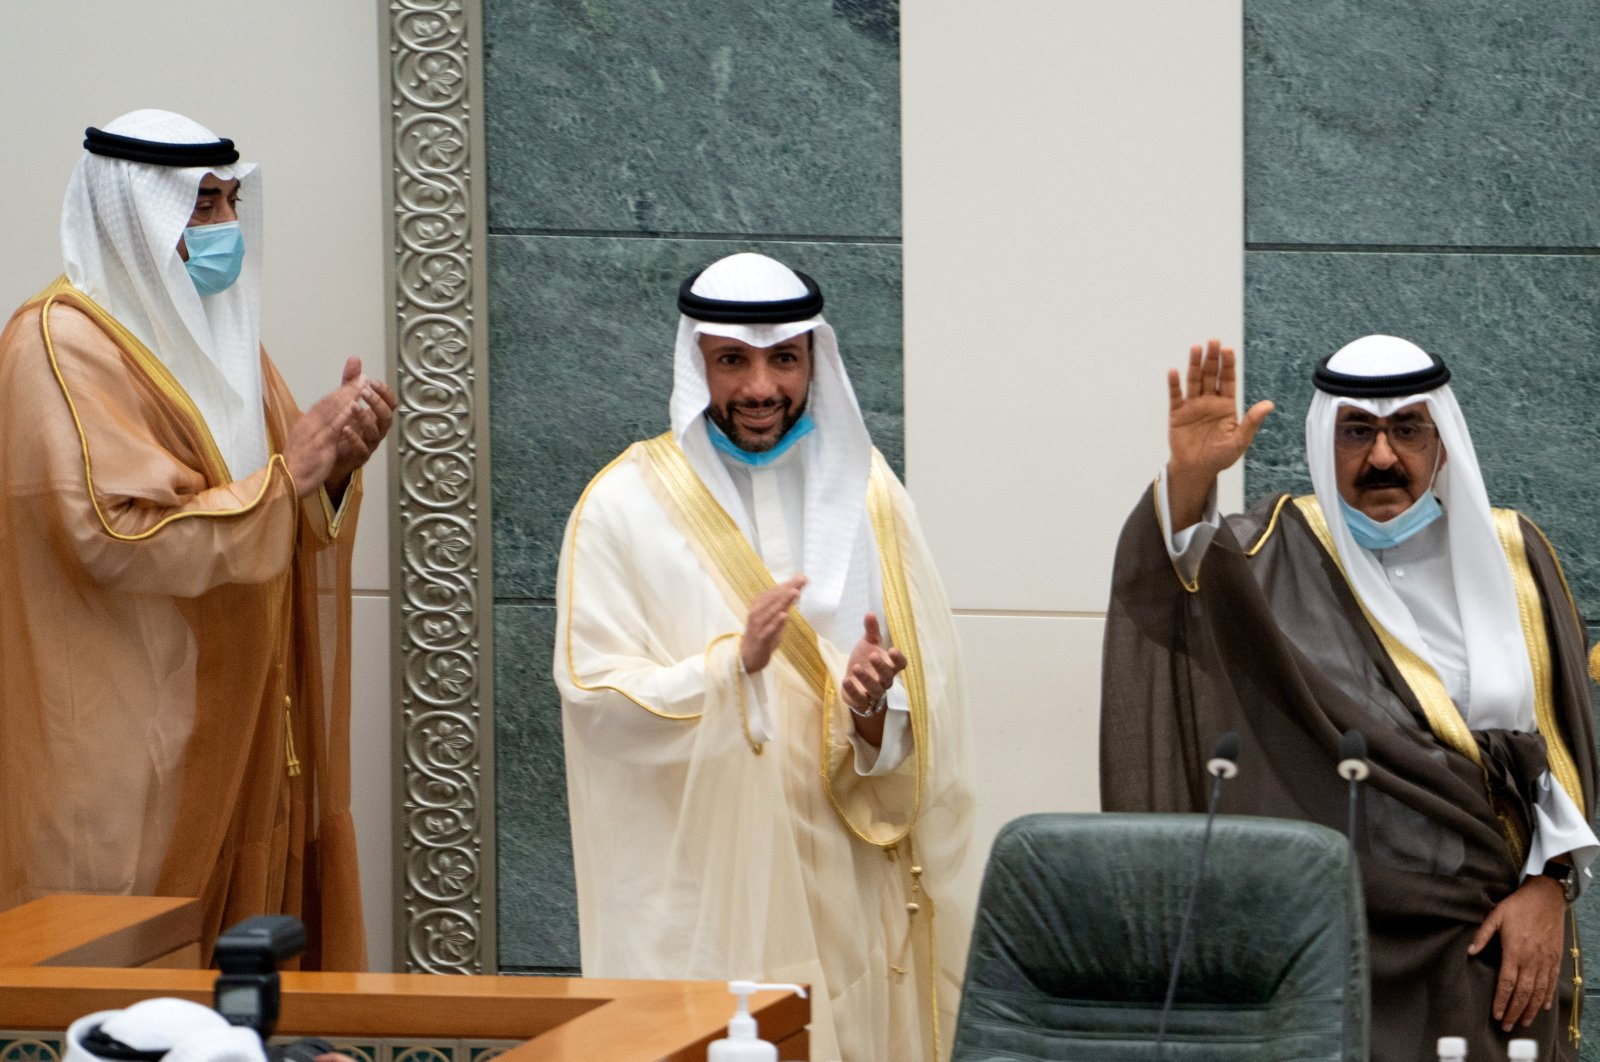 Kuwait's newly appointed crown prince Sheikh Meshal Al Ahmad Al Jaber Al Sabah waves before he is sworn in, as speaker of parliament Marzouq al-Ghanim, and Kuwait's Prime Minister Sheikh Sabah Al Khalid Al Sabah clap, at the parliament, in Kuwait City, Kuwait, Oct. 8, 2020. (Reuters Photo)